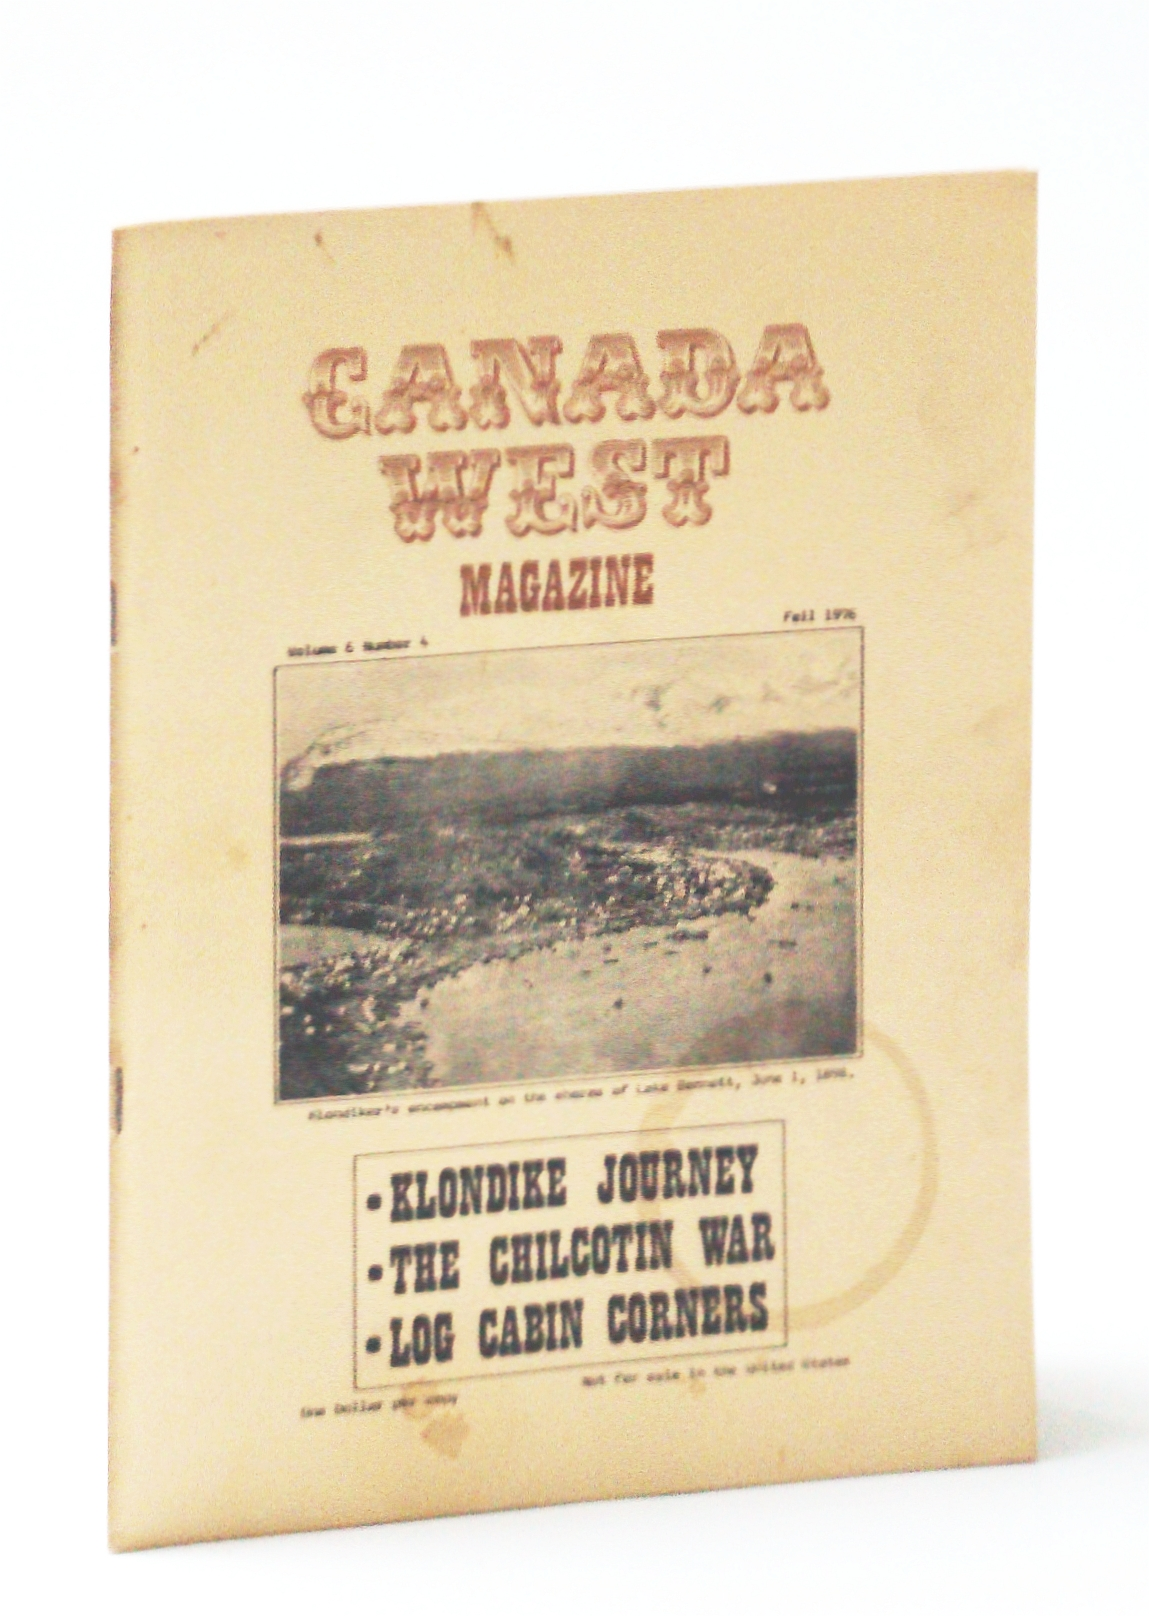 Image for Canada West Magazine, Fall 1976, Volume 6, Number 4 - The Chilcotin War